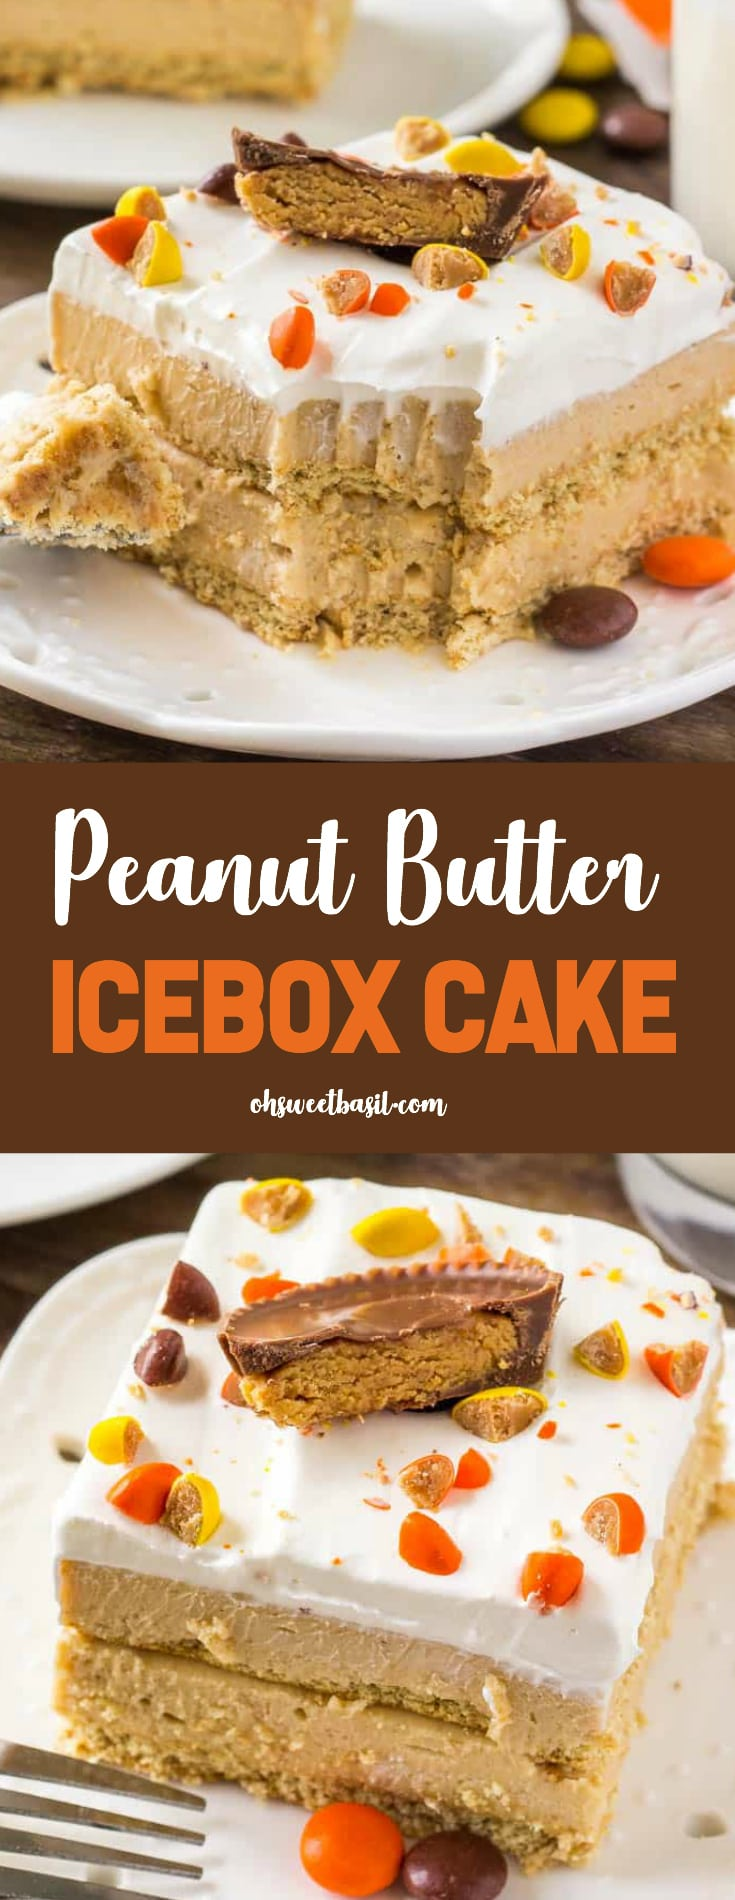 A slice of peanut butter icebox cake with layers of creamy peanut butter filling and topped with peanut butter candies.